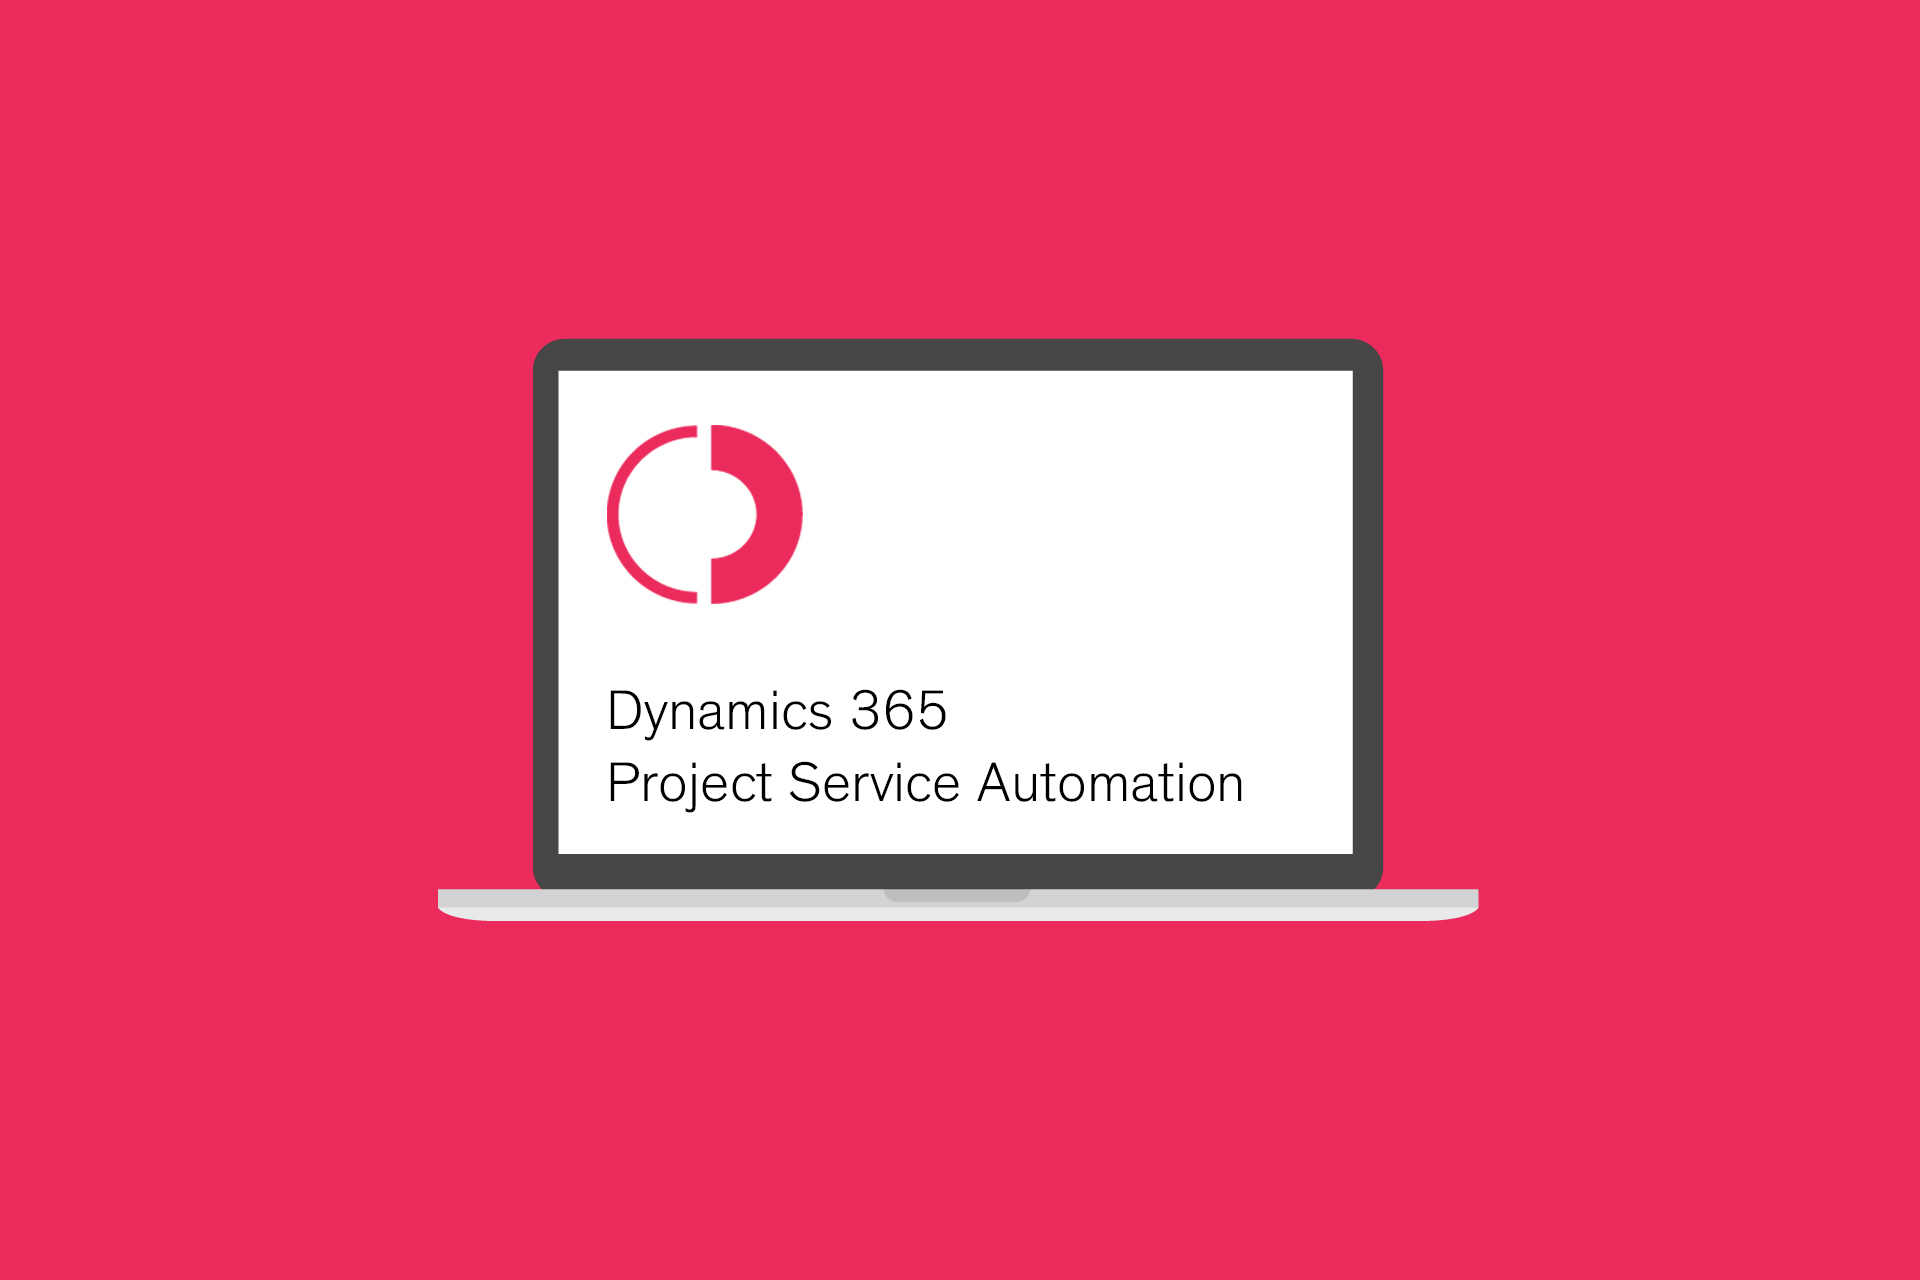 User Acceptance Testing for Dynamics 365 Project Service